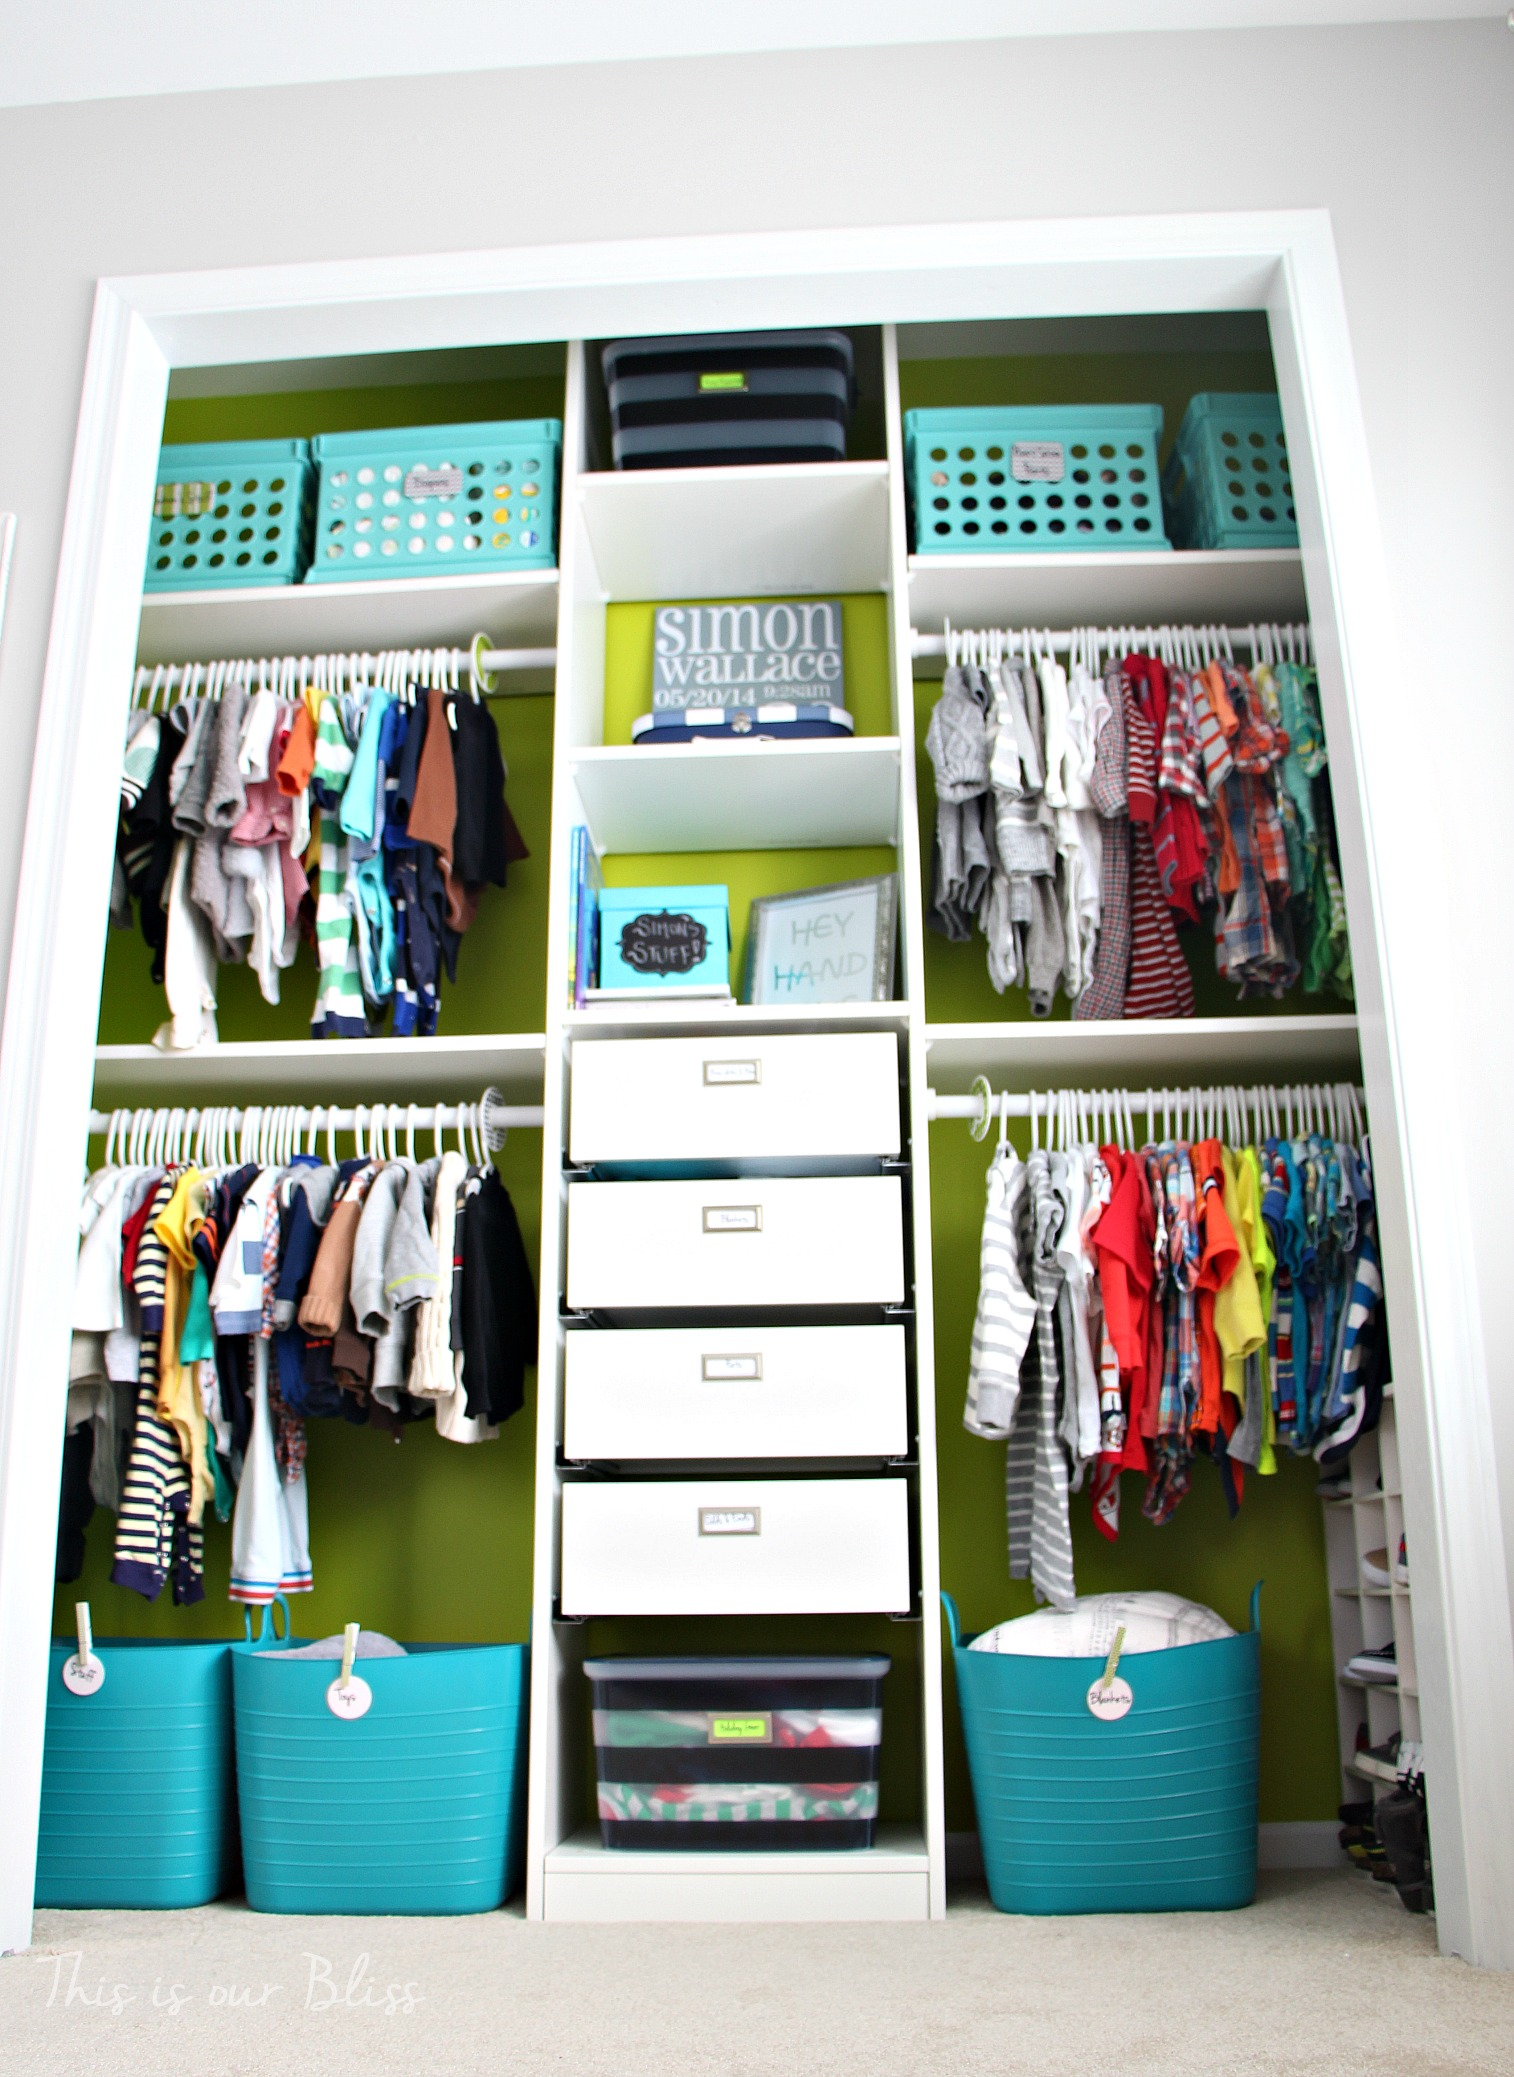 Nursery Closet Makeover Details How to DIY a Closet This is our